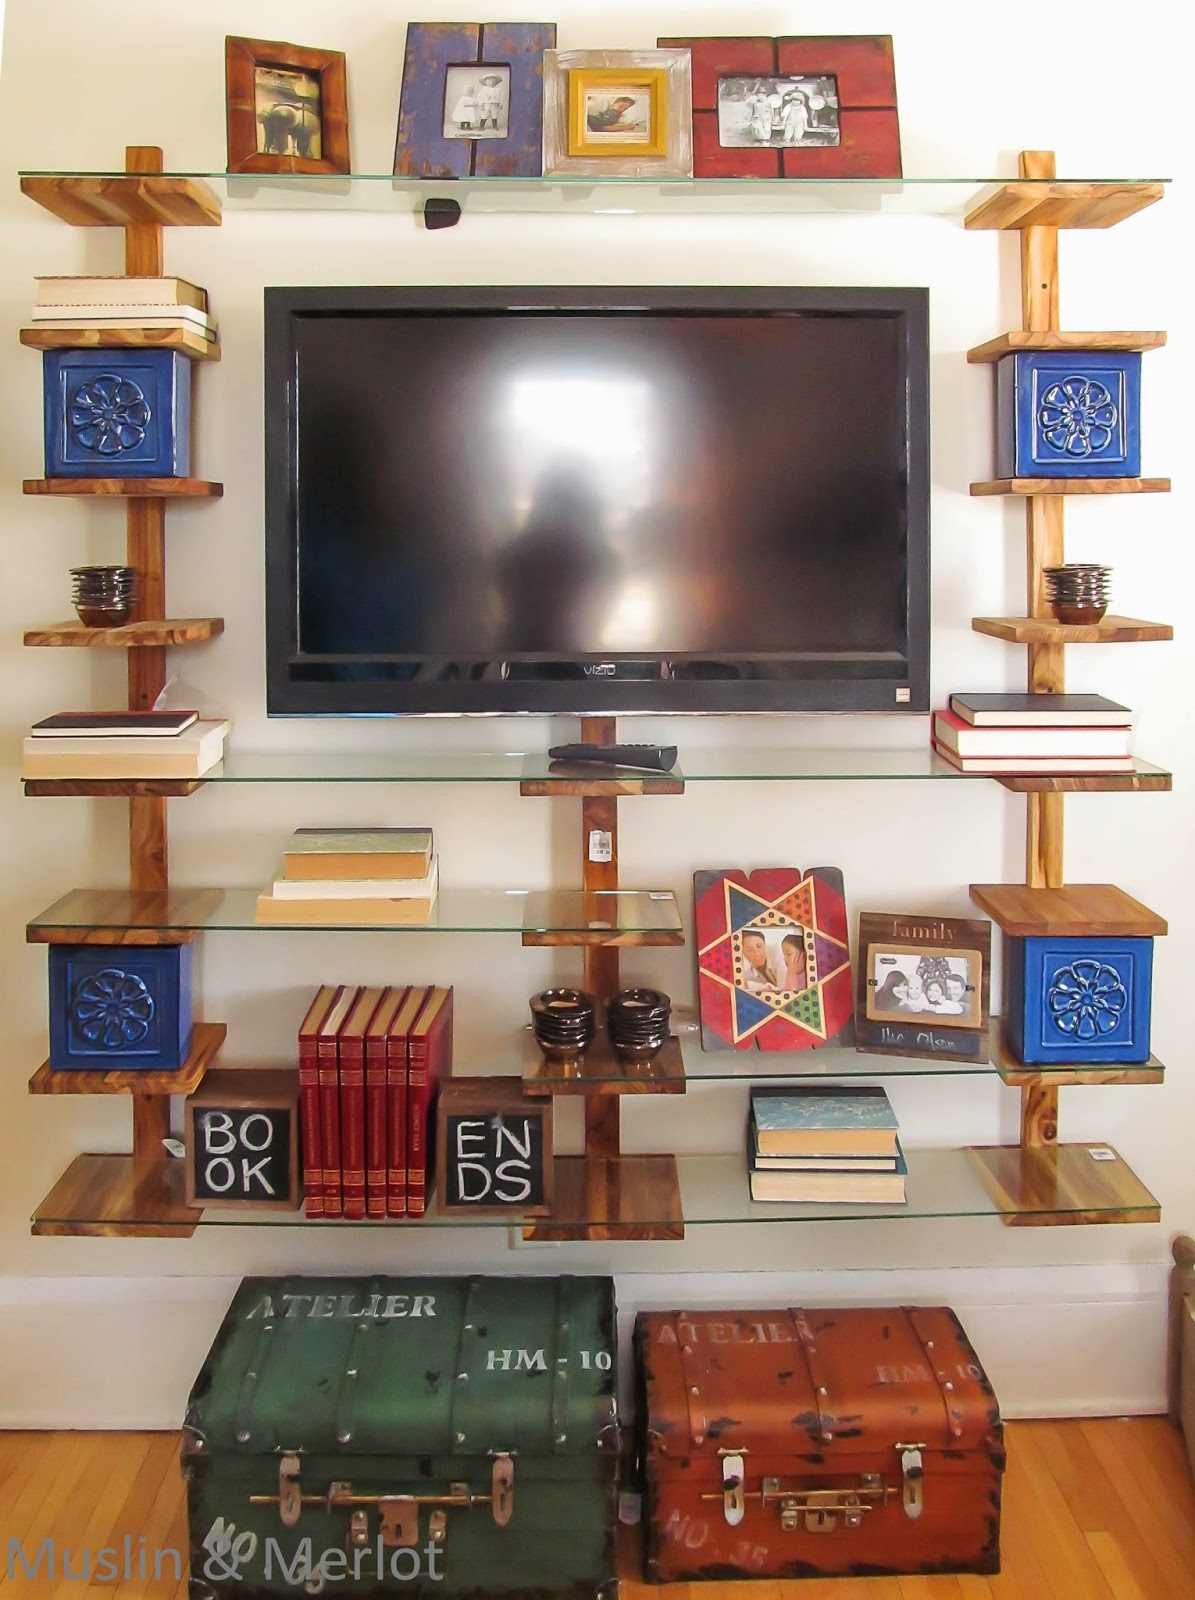 Narrow bookshelves + glass shelves = AWESOME!